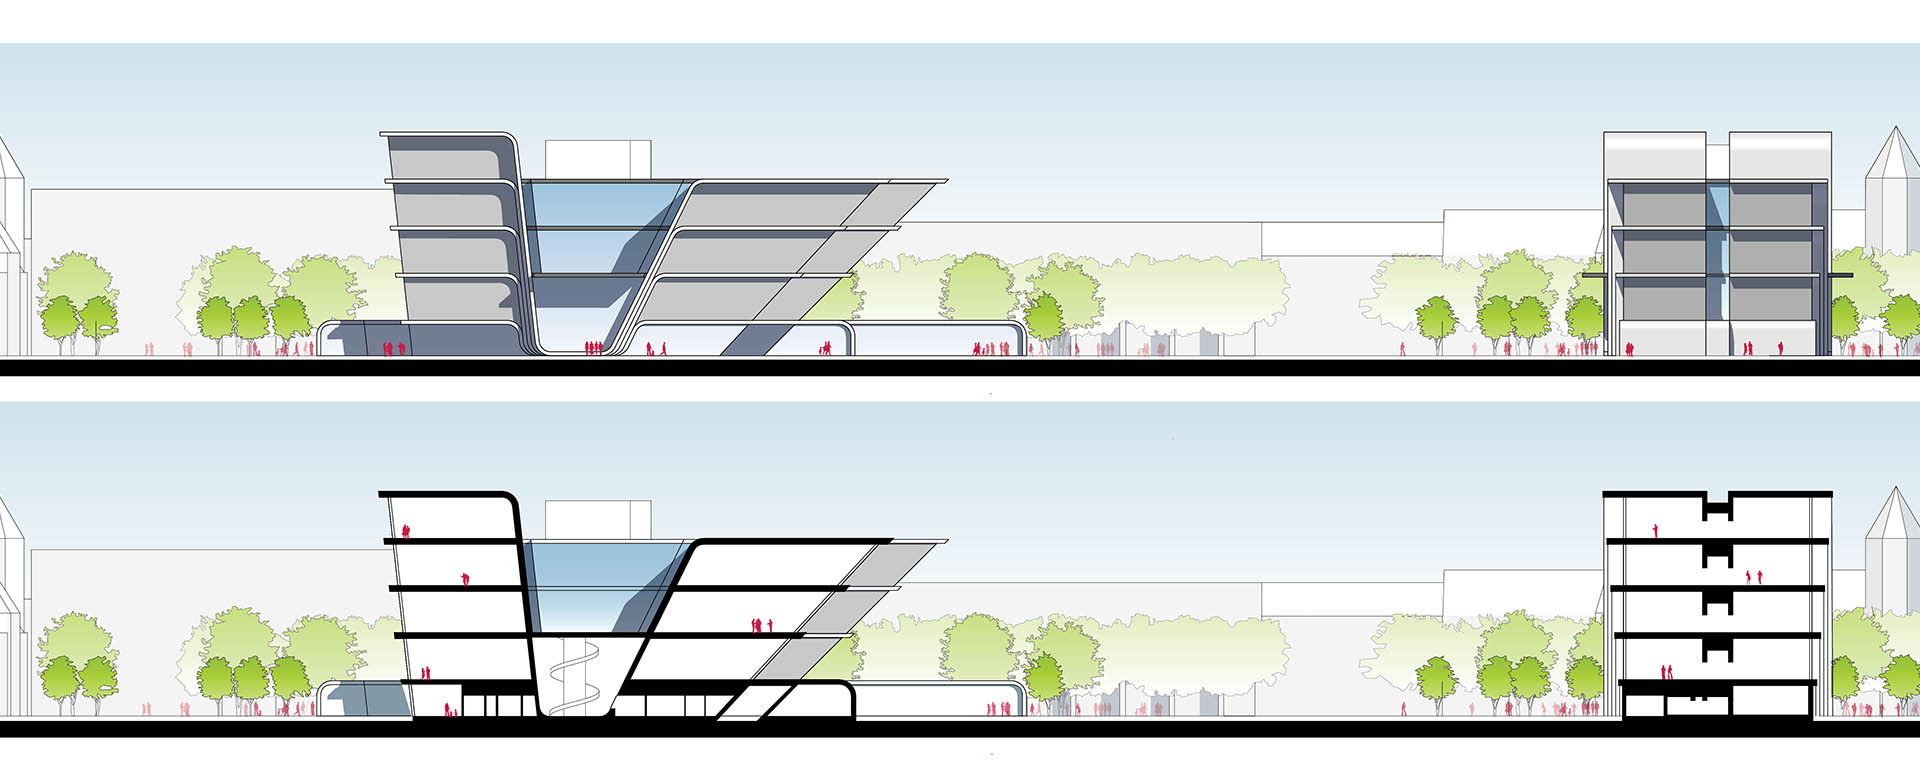 The New Bauhaus Museum Sections / Elevations